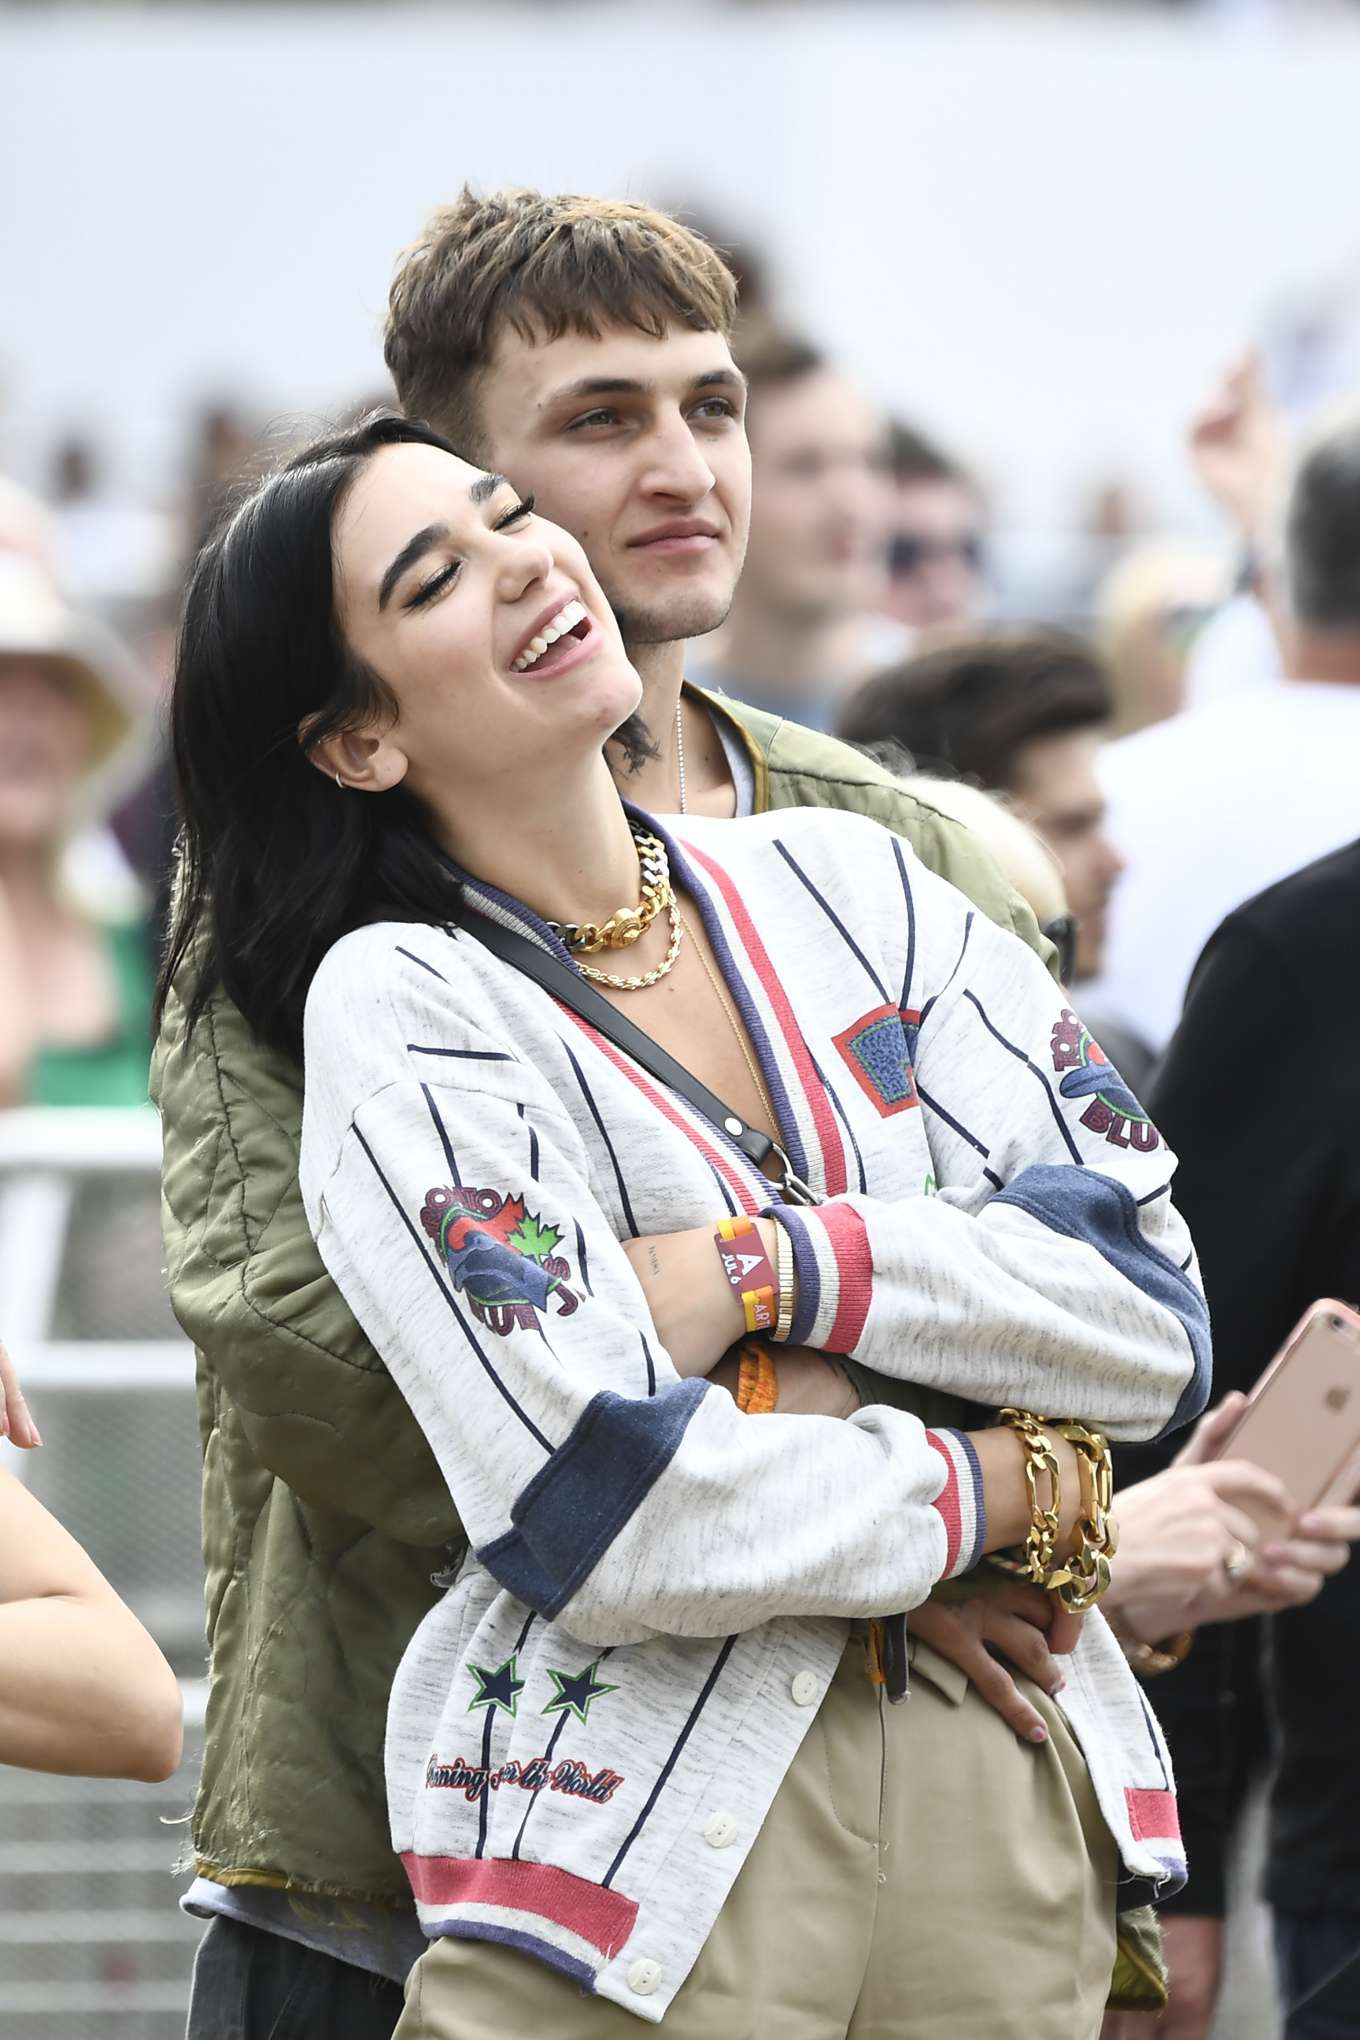 Dua Lipa - Watching Lionel Richie at British Summertime 2019 in London